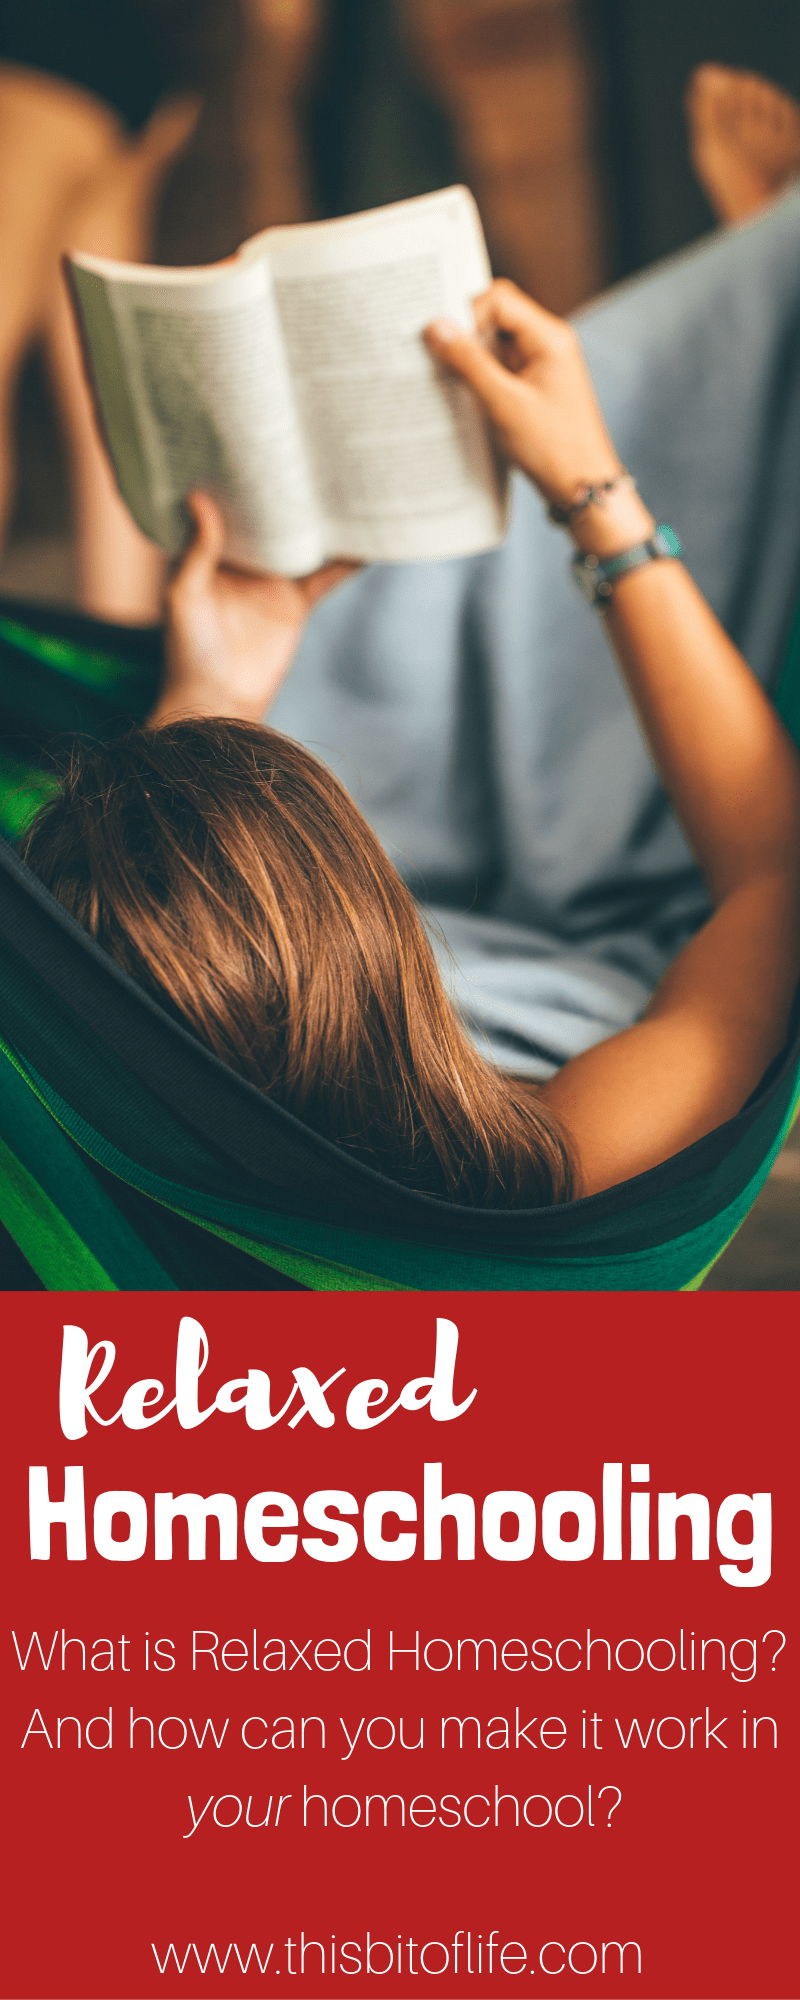 What is Relaxed Homeschooling? And how can you make it work for your family? This homeschooling method is a great fit for our family and has made for a happier homeschool, with real life opportunities and child led learning.